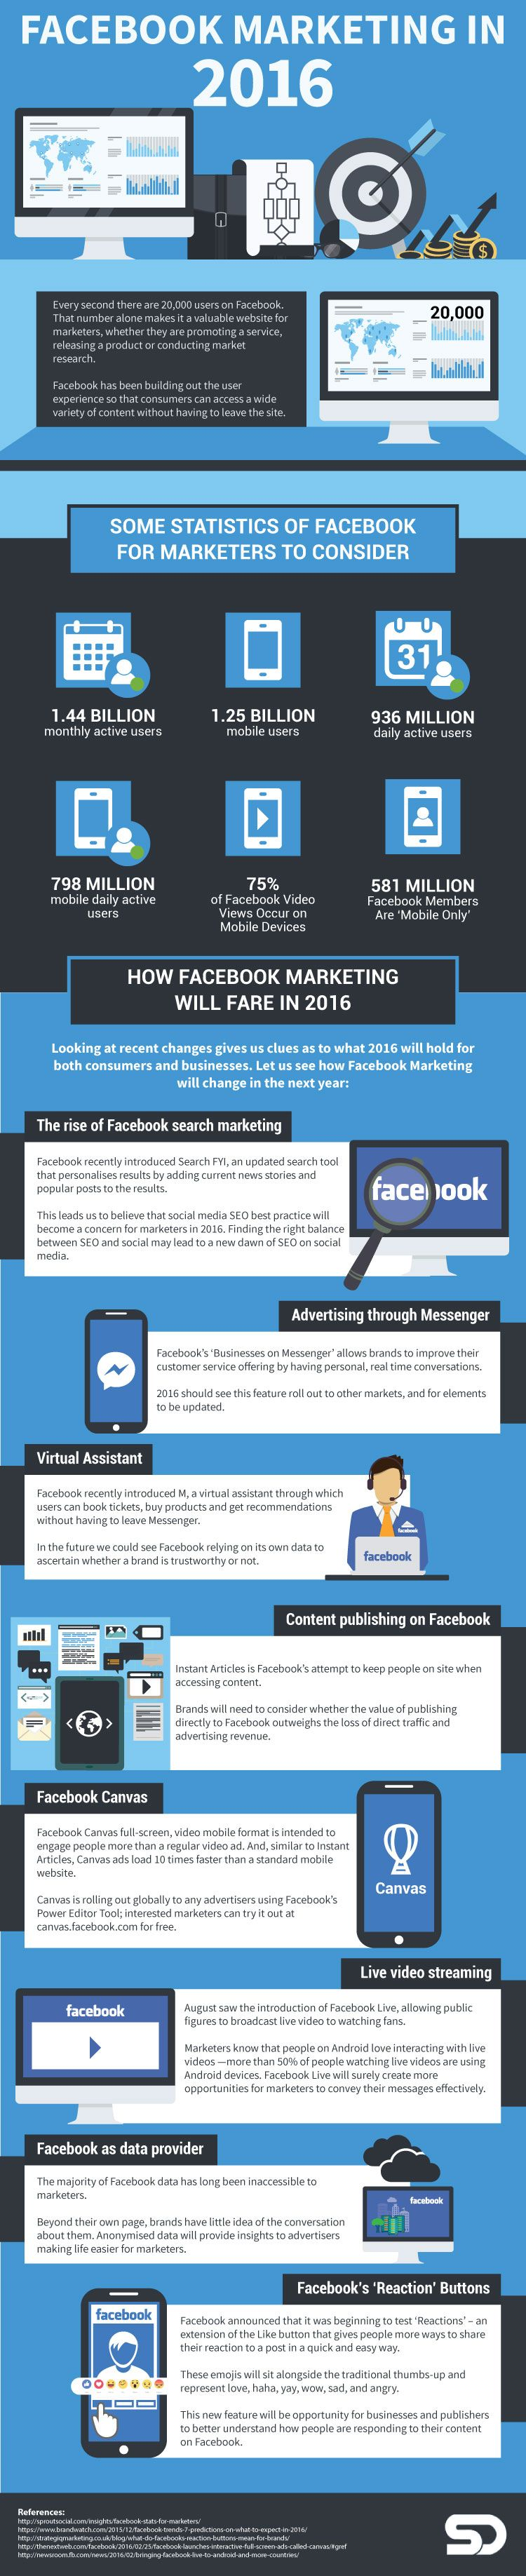 Facebook Marketing in 2016 [Infographic]